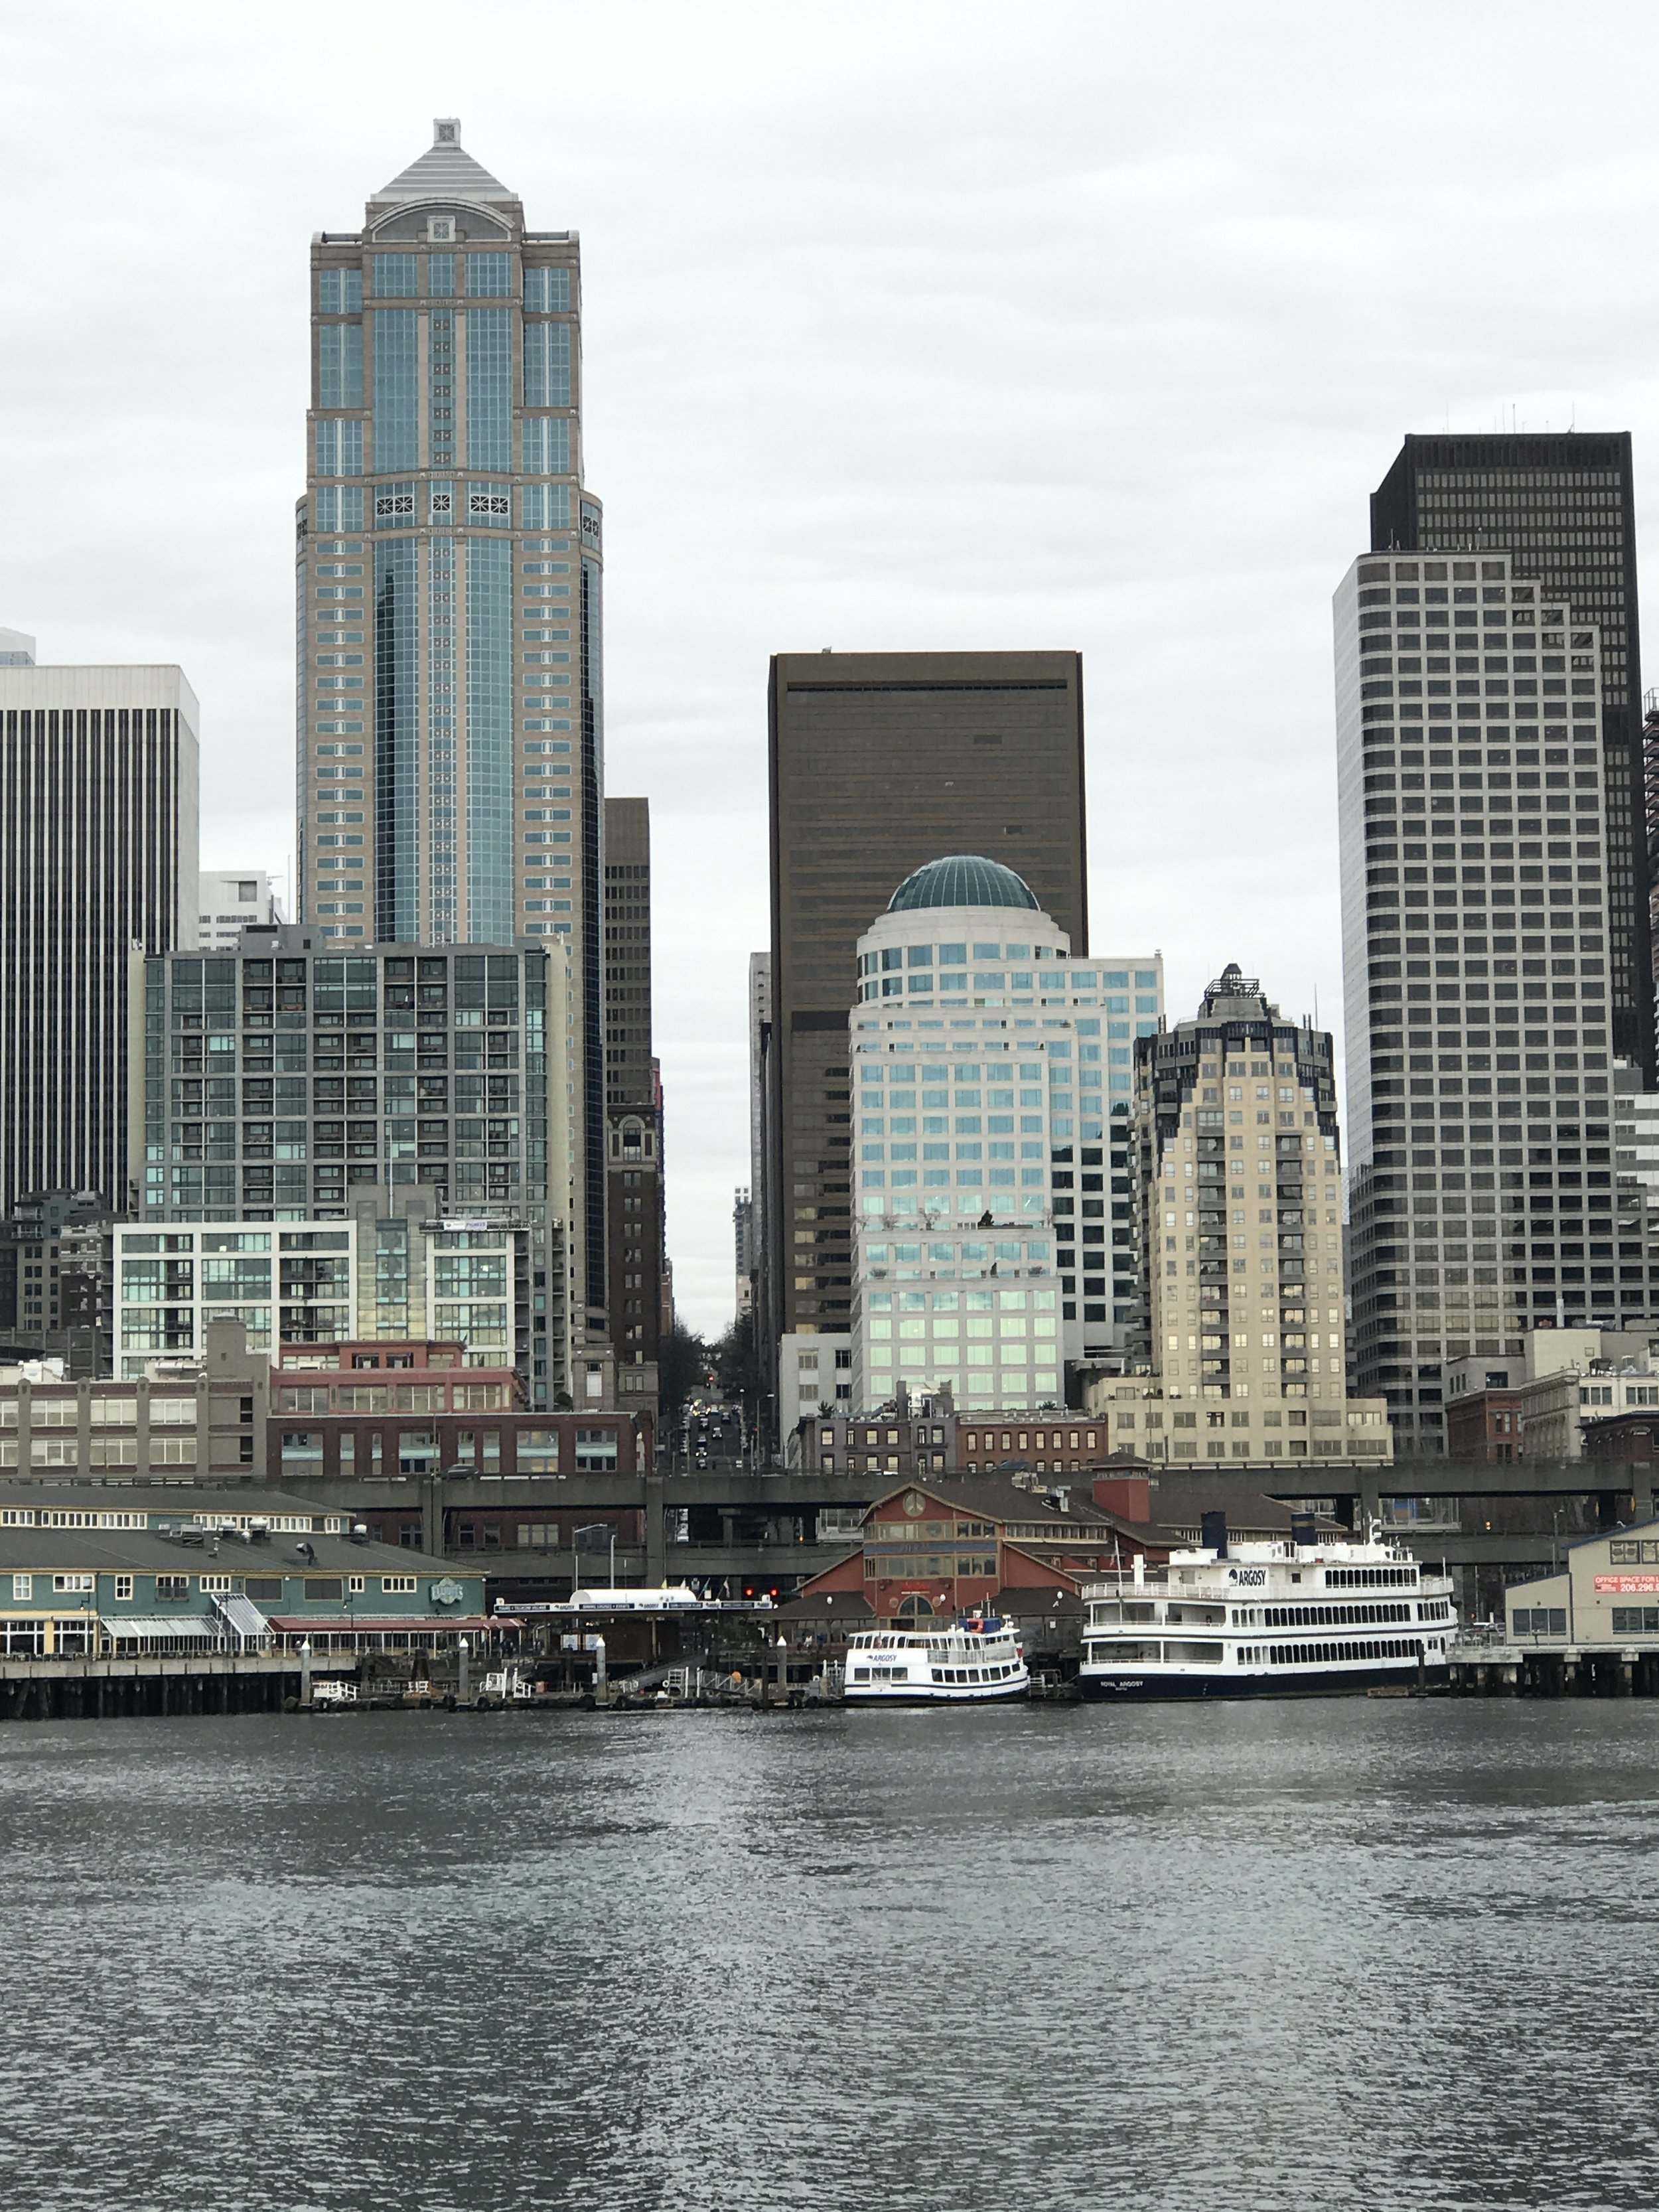 VIEW OF THE EMERALD CITY SKYLINE FROM THE HARBOUR